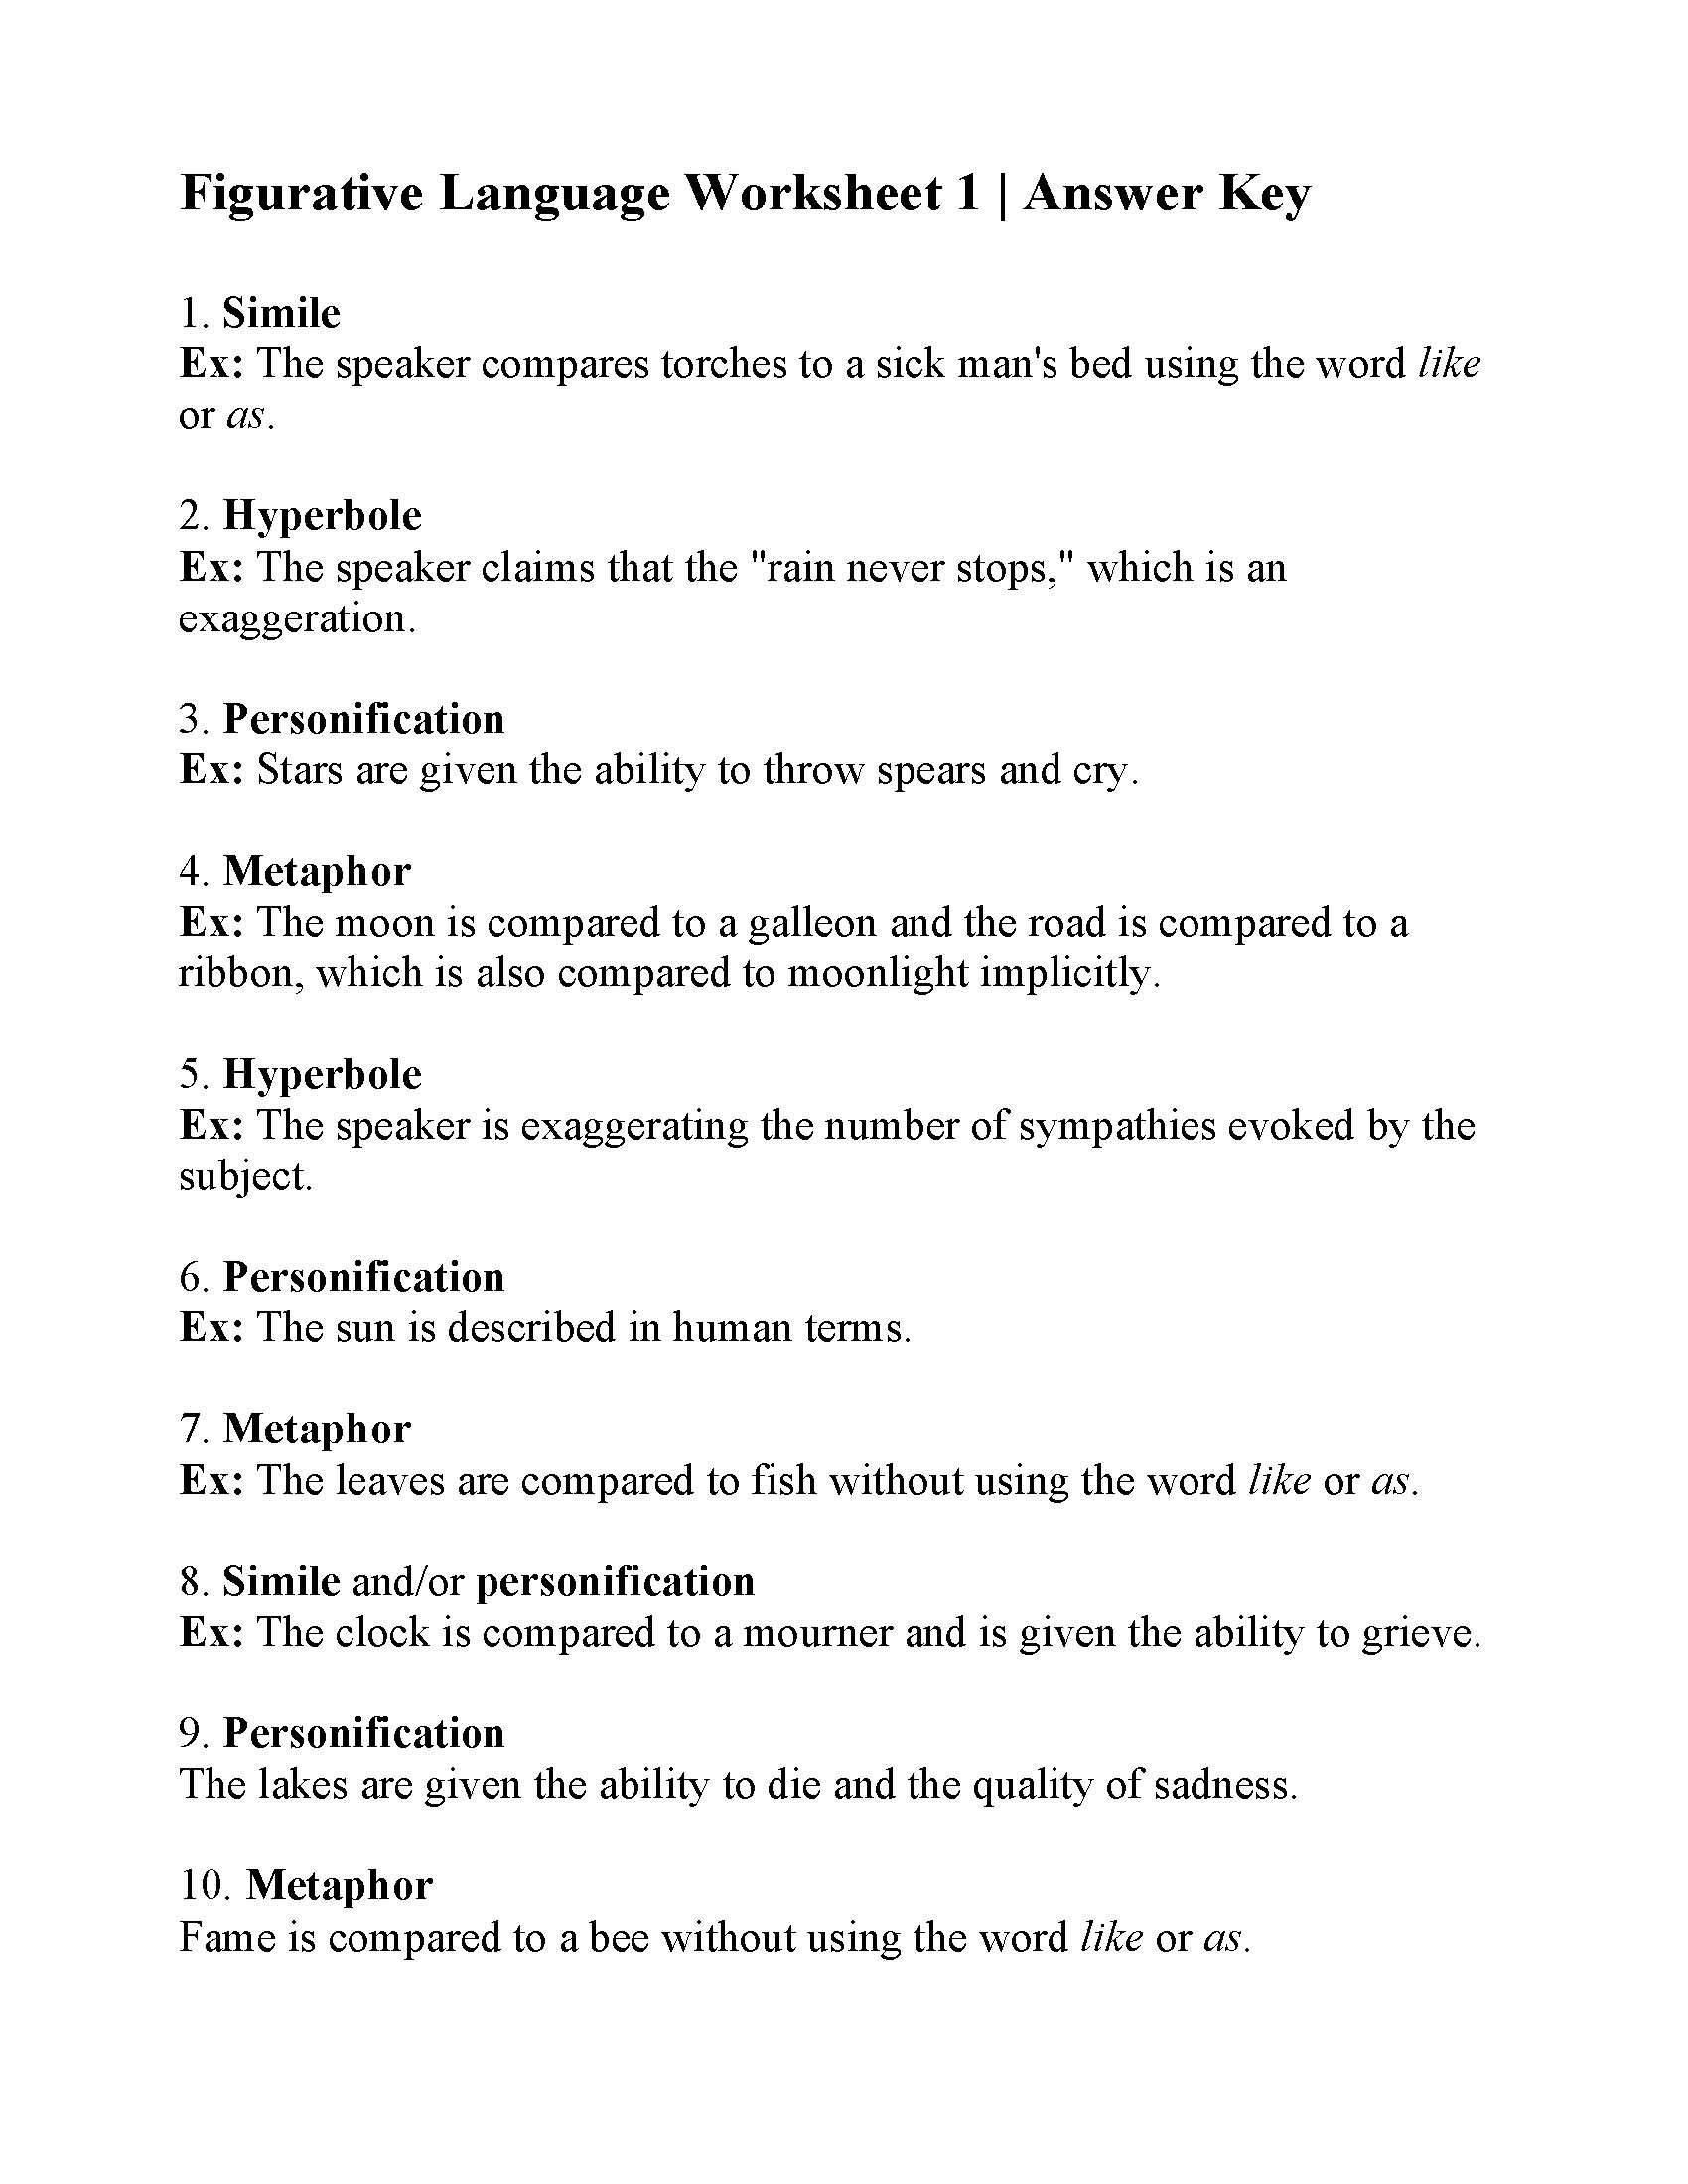 Free Printable Figurative Language Worksheets 10 Printable Worksheets Figurative Language In 2020